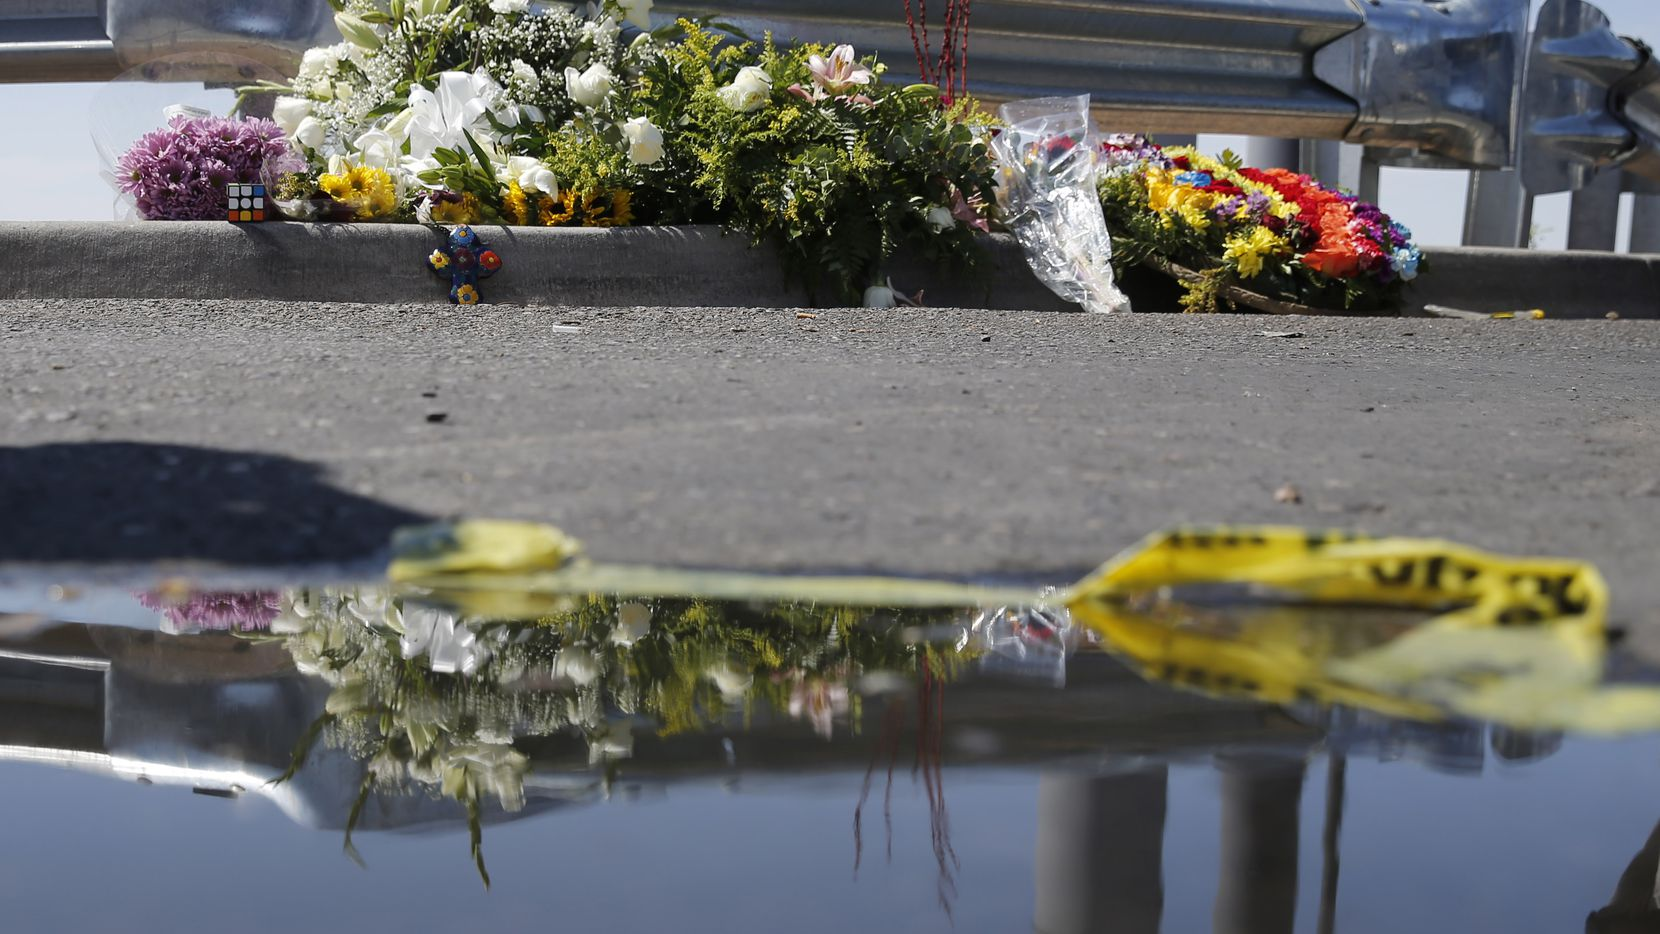 Flowers and other items near an entrance to the Walmart in El Paso, Texas on Sunday, August 4, 2019. 20 people were shot and killed and 26 more were wounded at a Walmart in El Paso on Saturday. (Vernon Bryant/The Dallas Morning News)